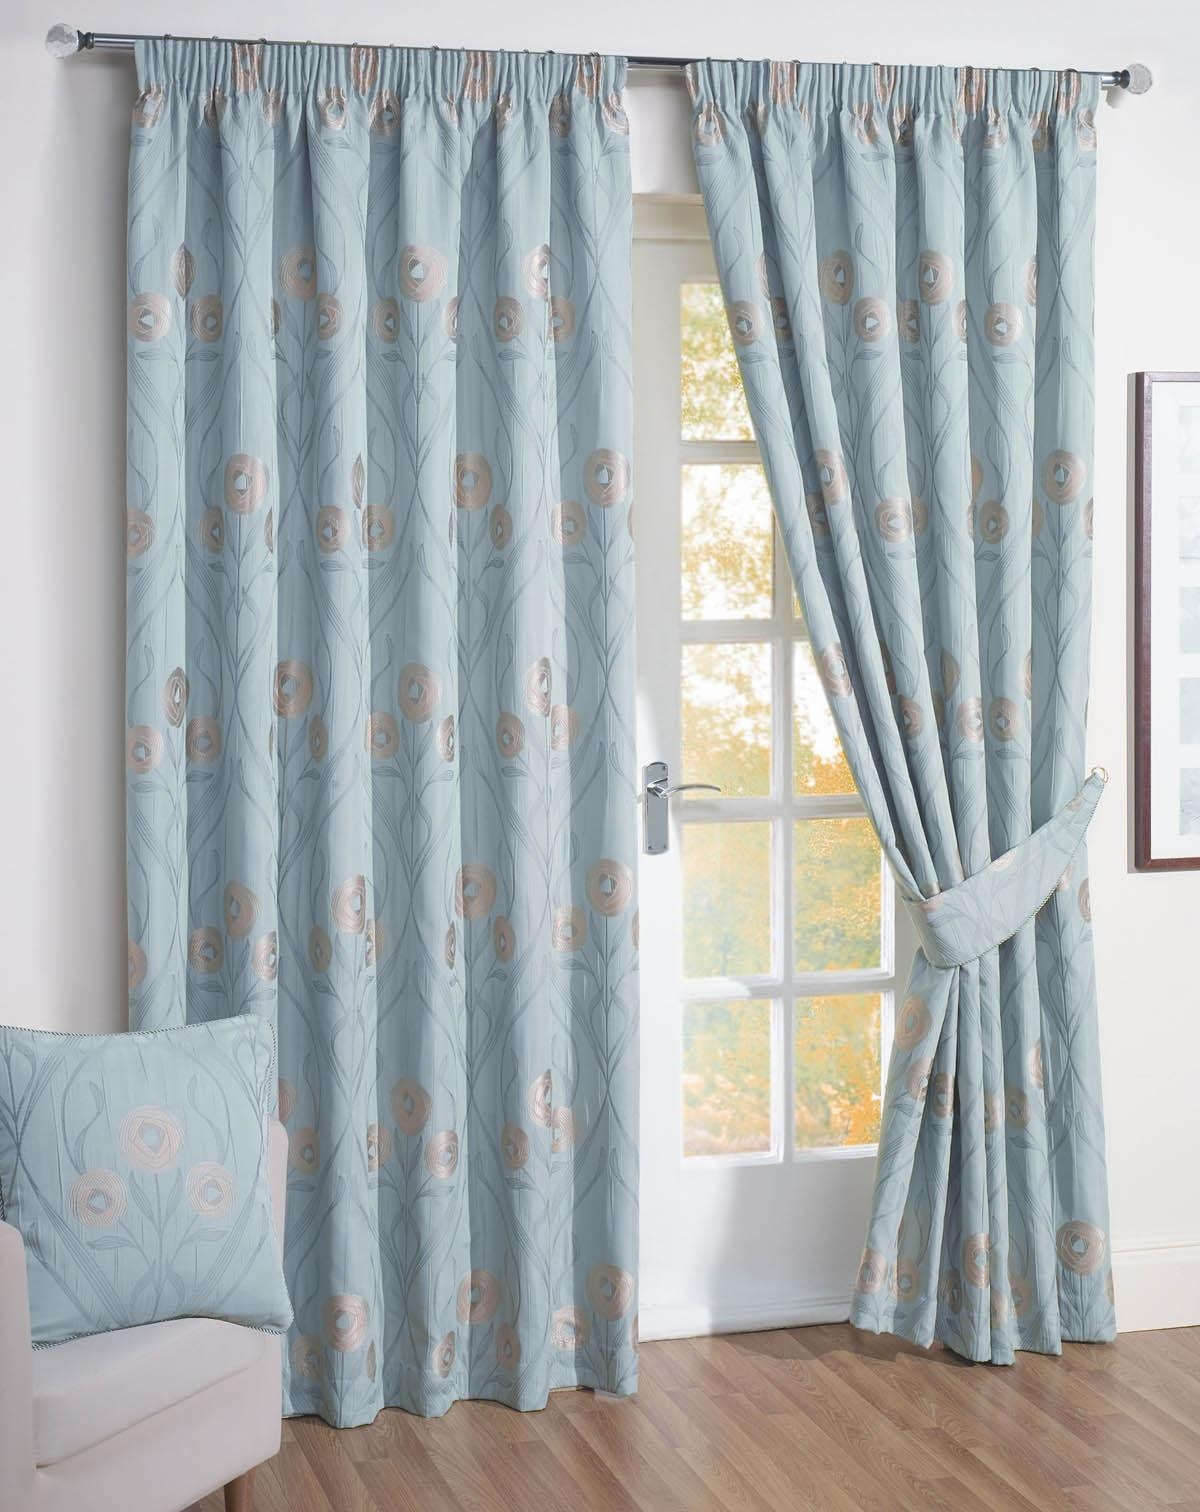 Thick Curtains Affordable Curtains Available Terrys Fabrics Pertaining To Short Drop Ready Made Curtains (View 14 of 15)